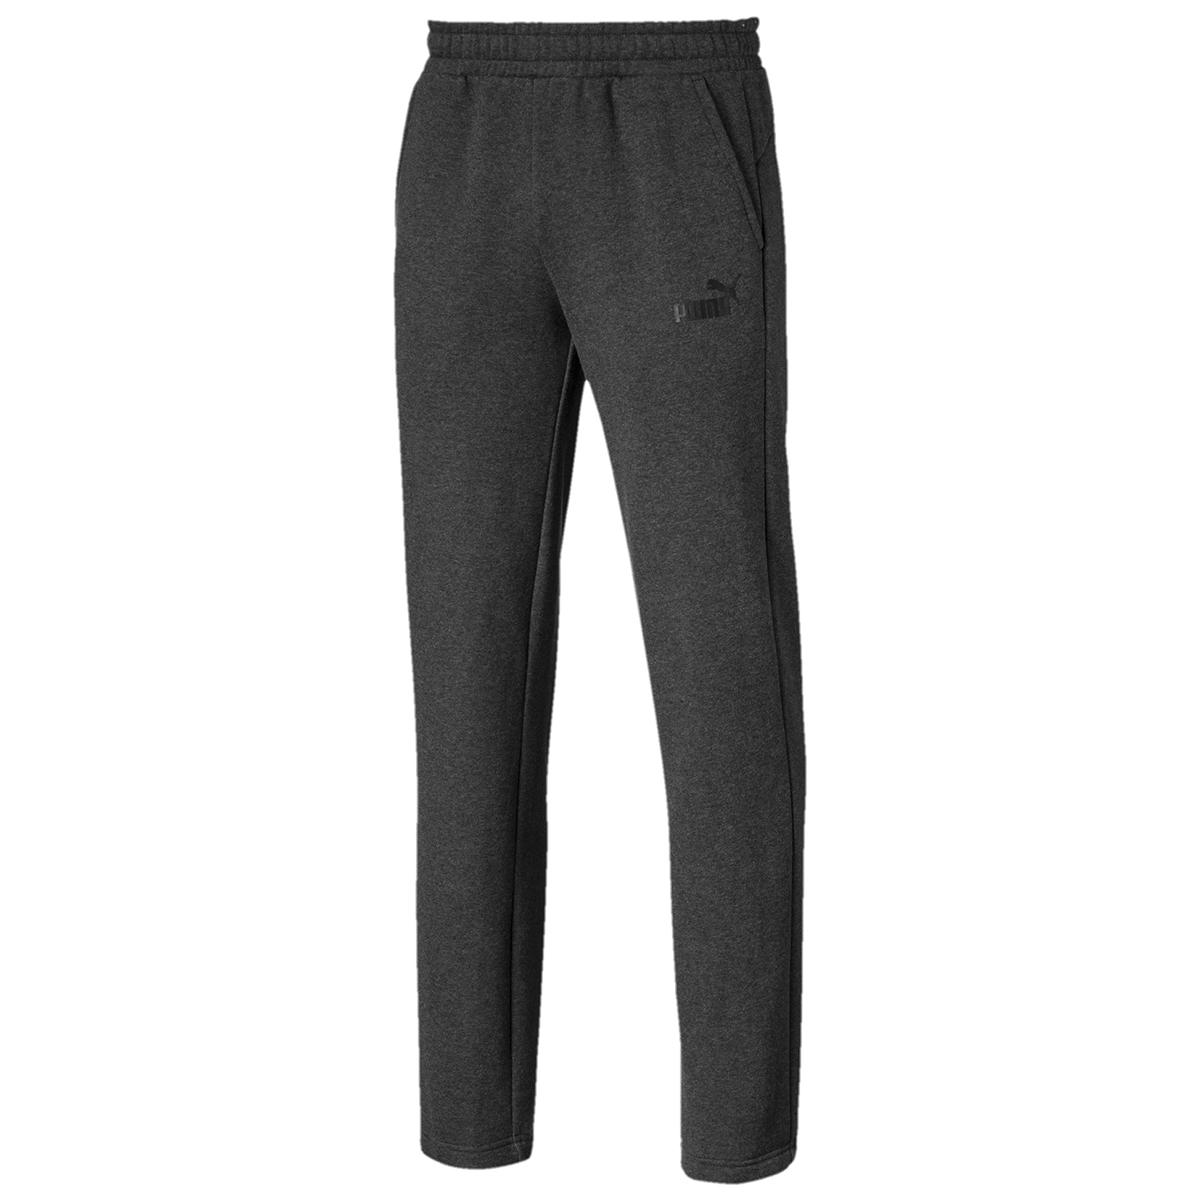 Puma Men's Essential Logo Pants - Black, XL